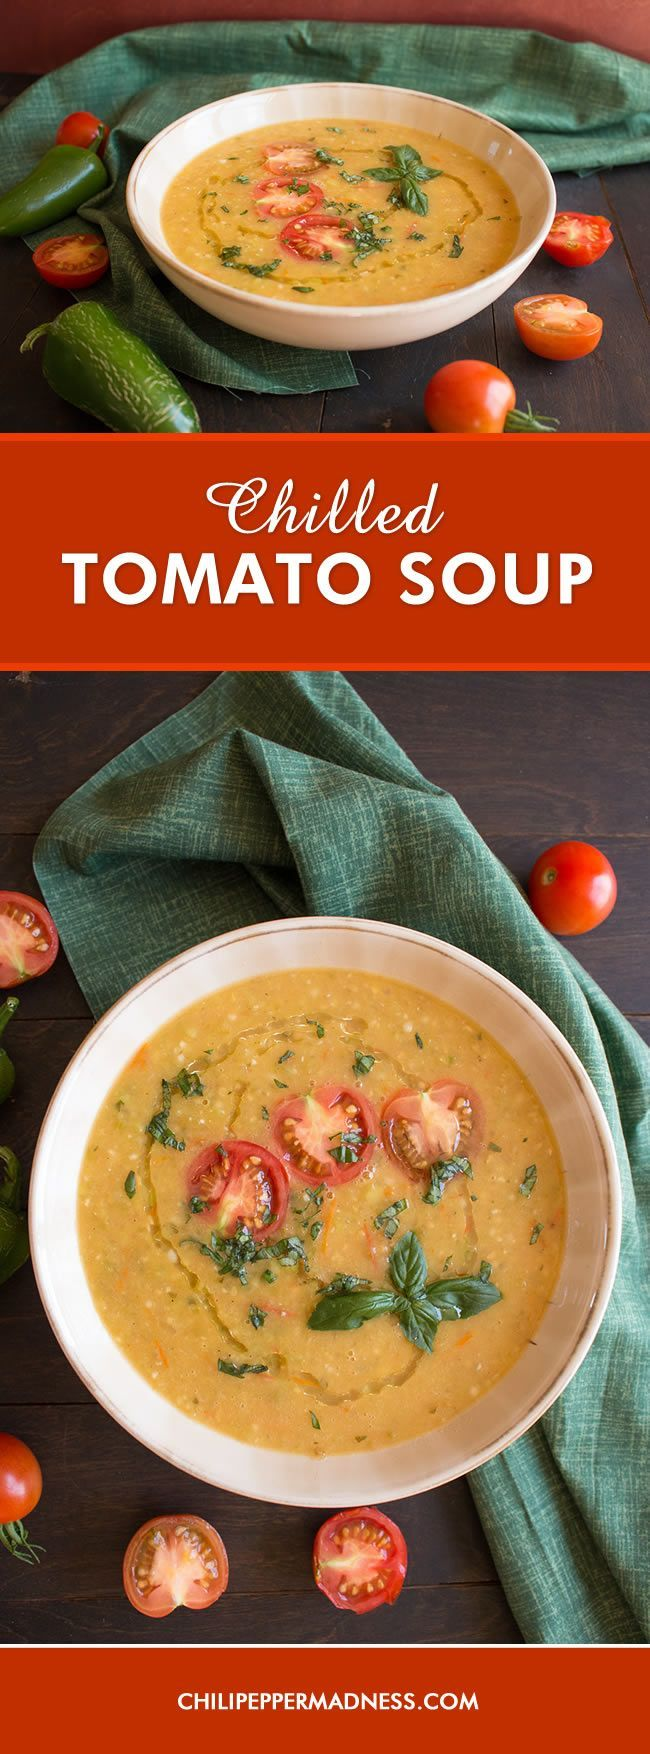 Fresh Chilled Tomato Soup (with Peppers) - A recipe for homemade soup ...